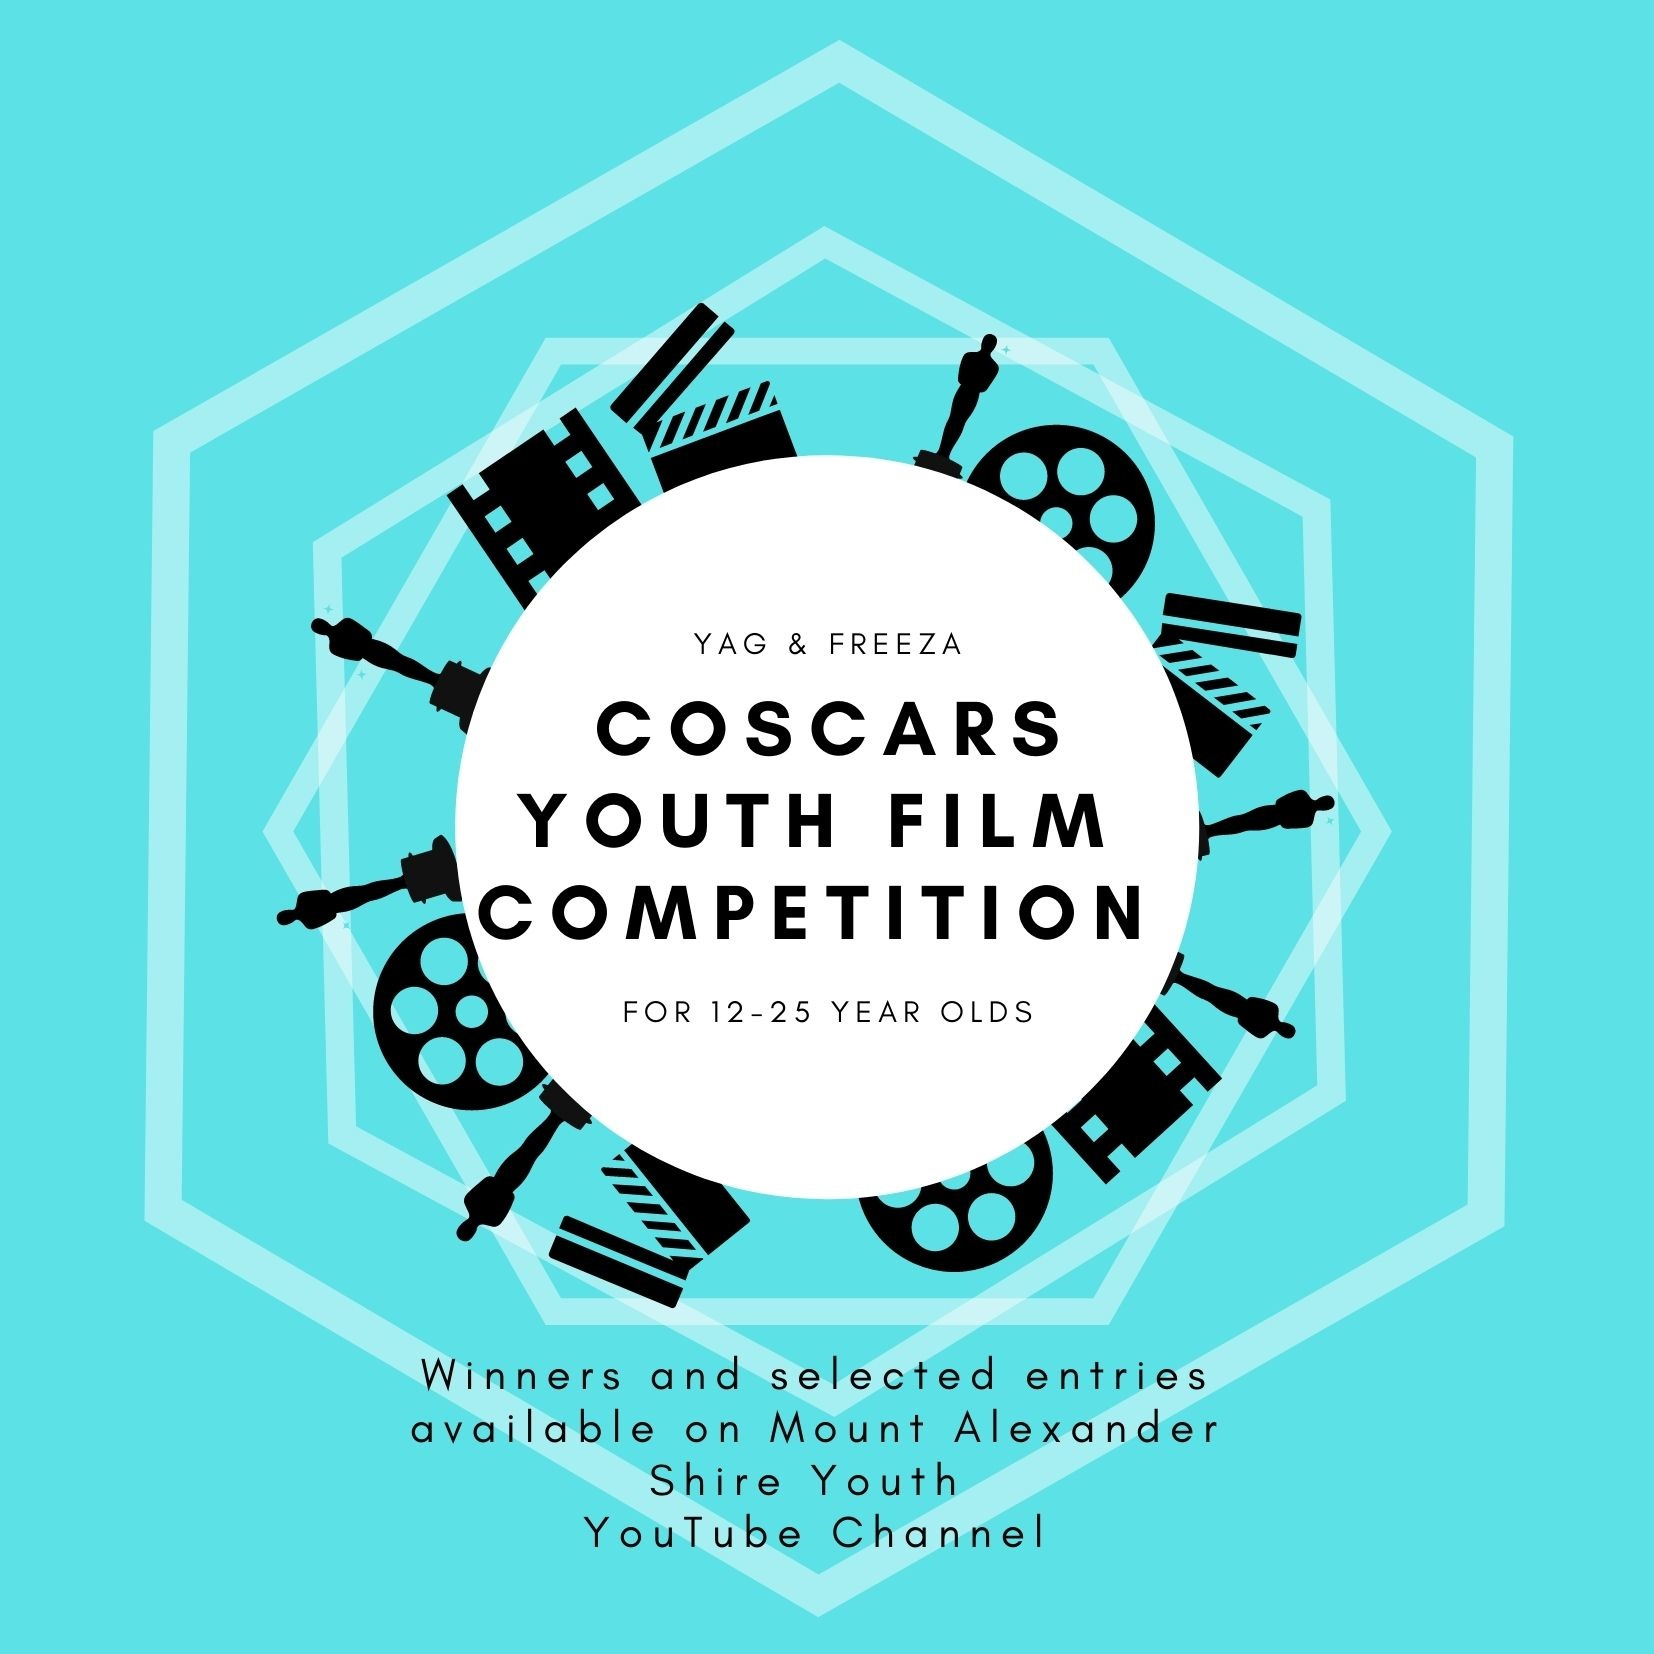 COscars Youth Film Competition 2020